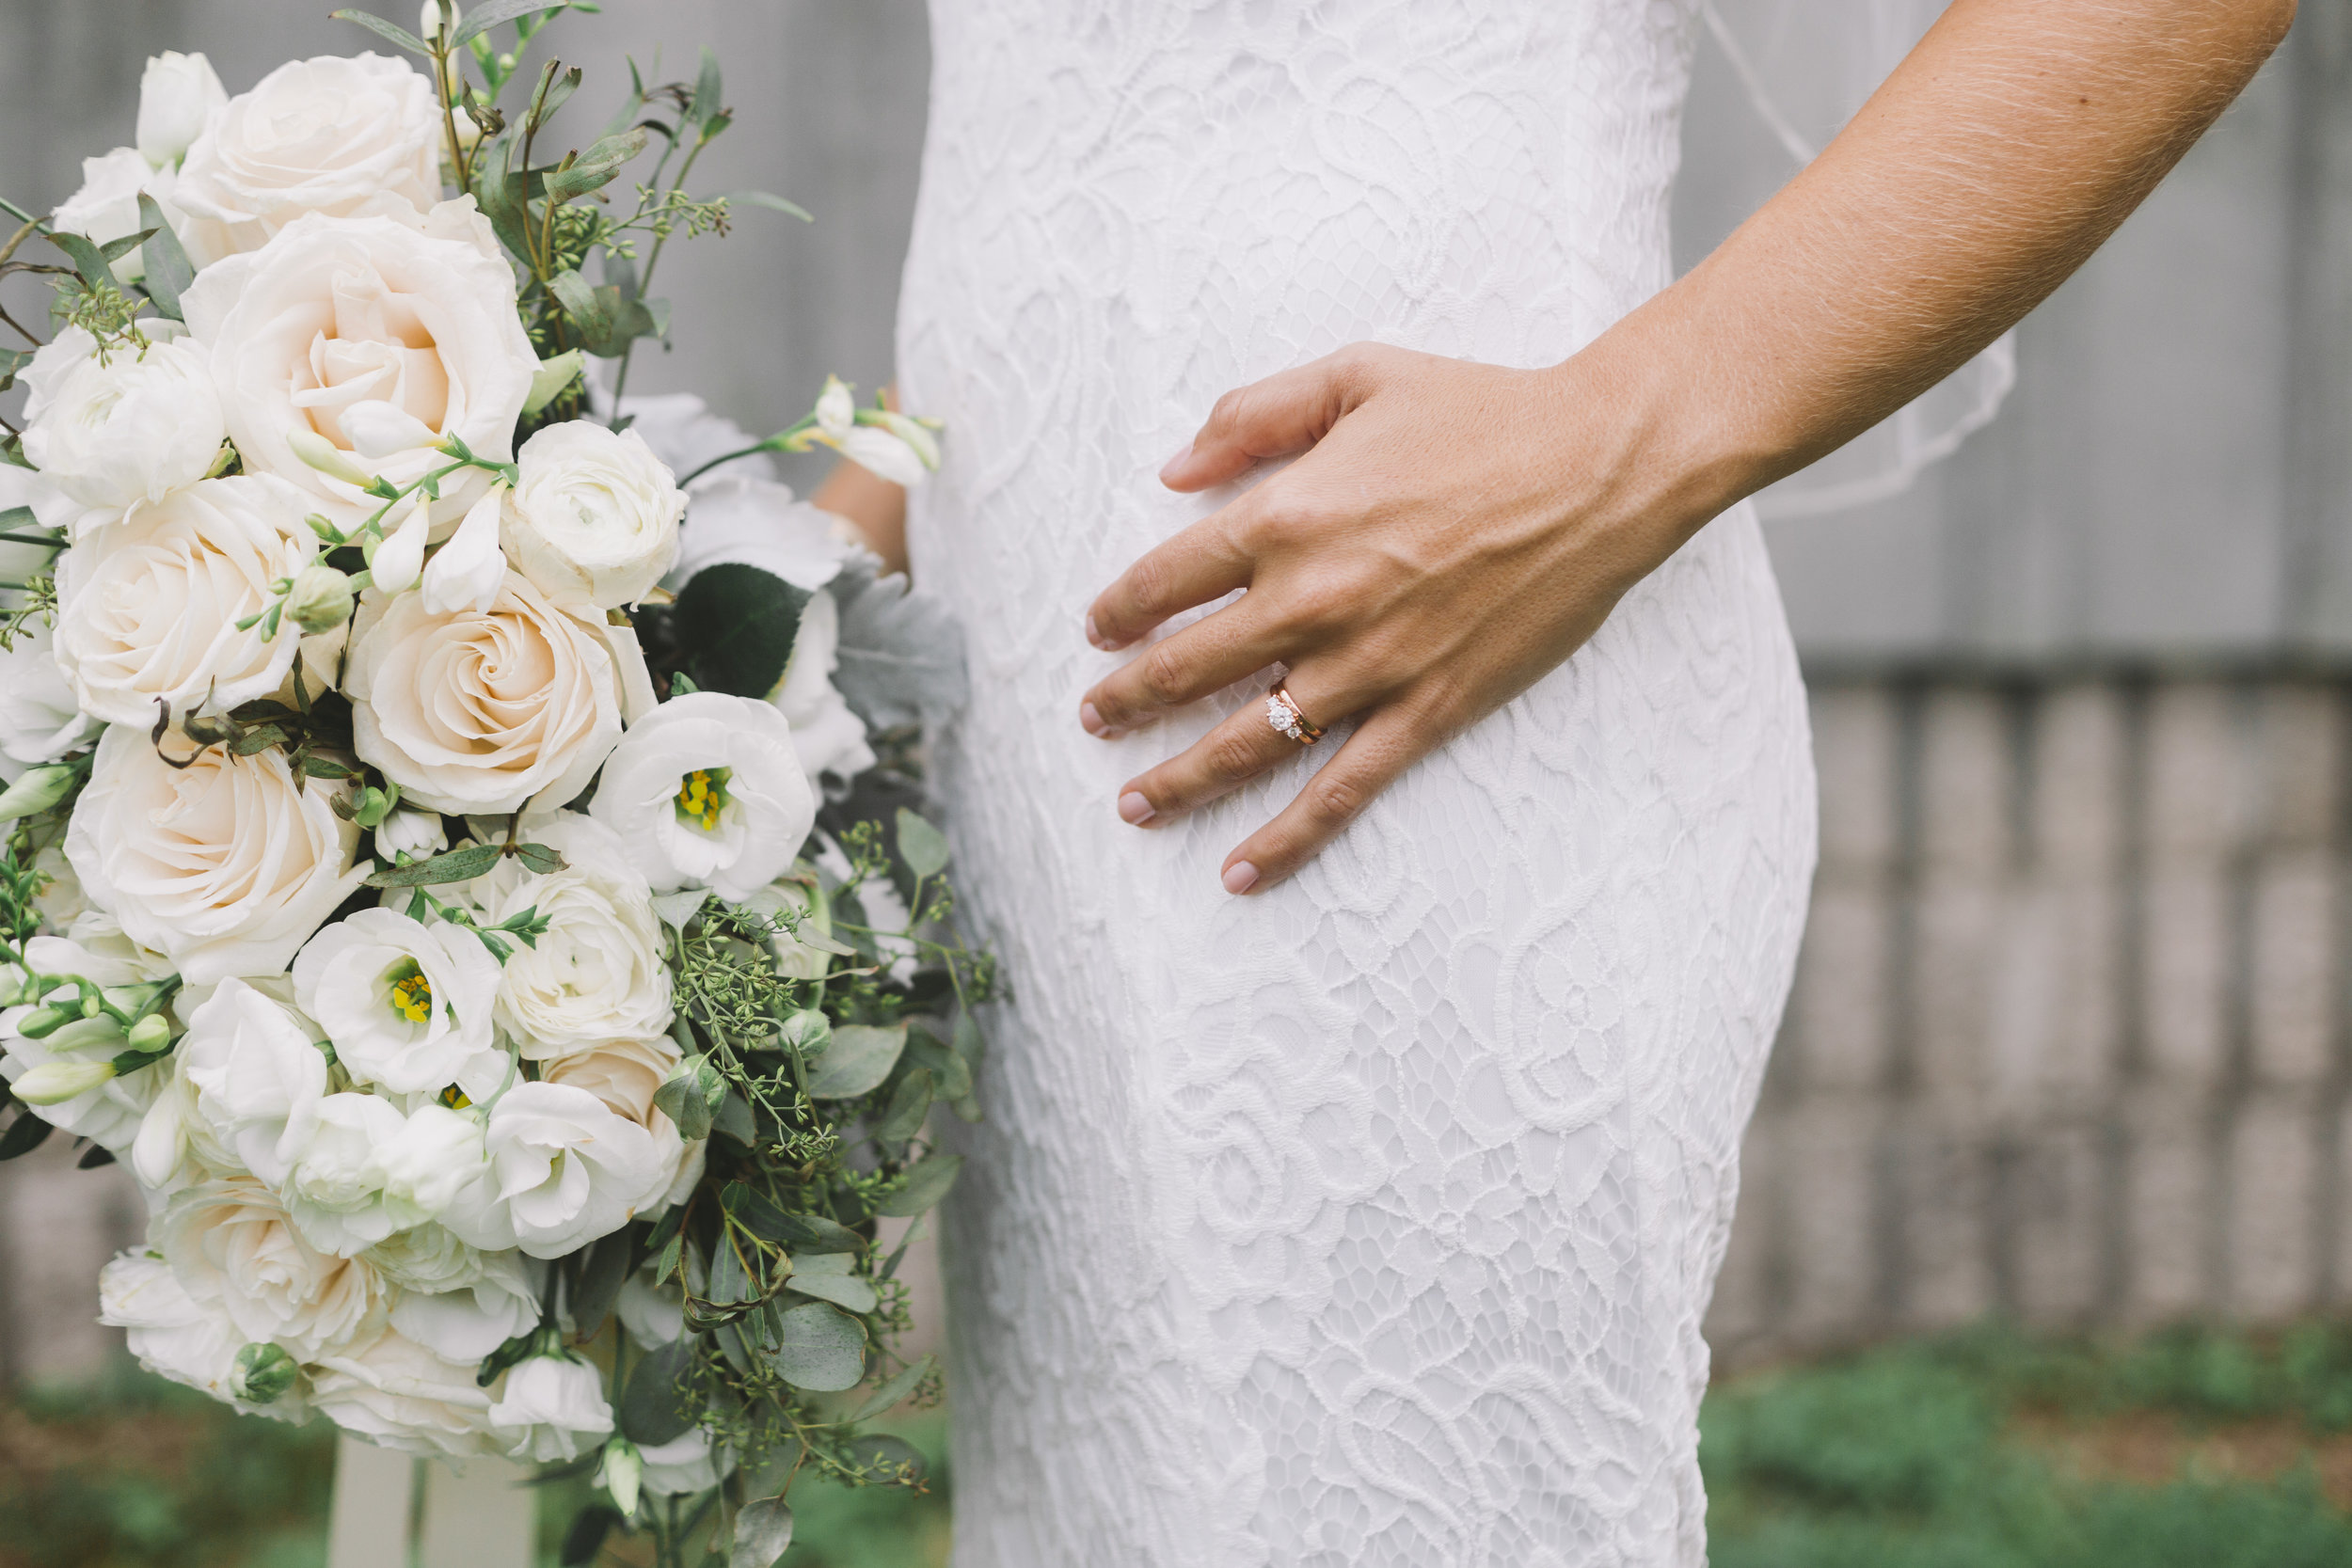 Wedding Ring with Bouquet of Flowers